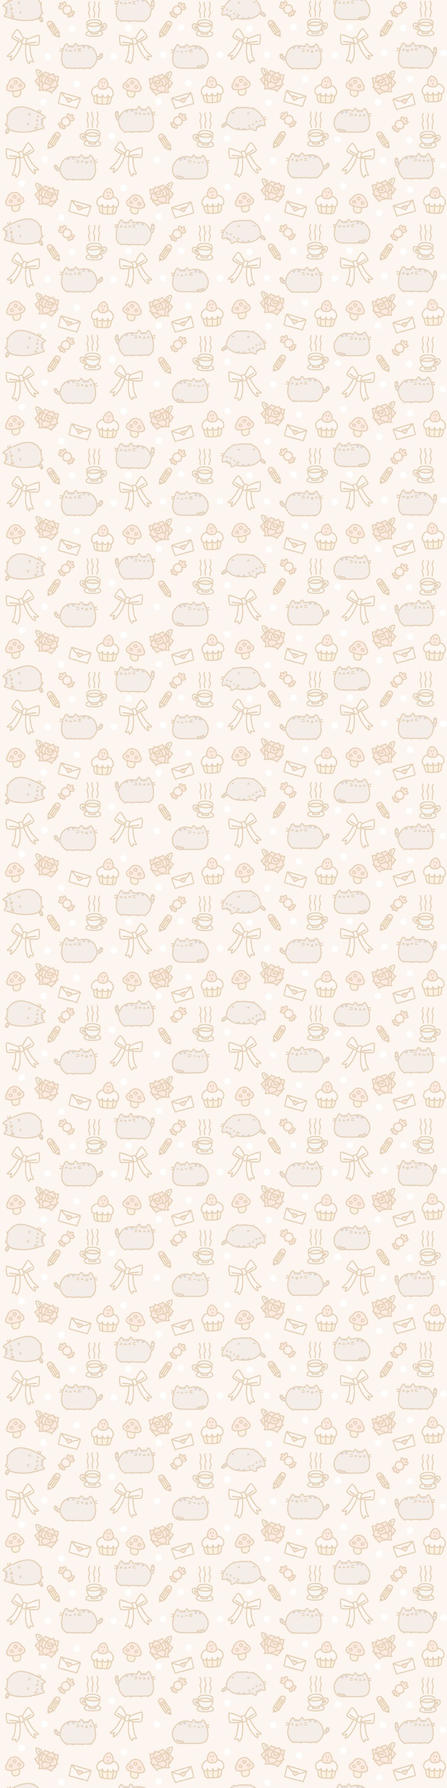 moaar pusheen ~OAO by Pusheen-GiveGet-Cafe